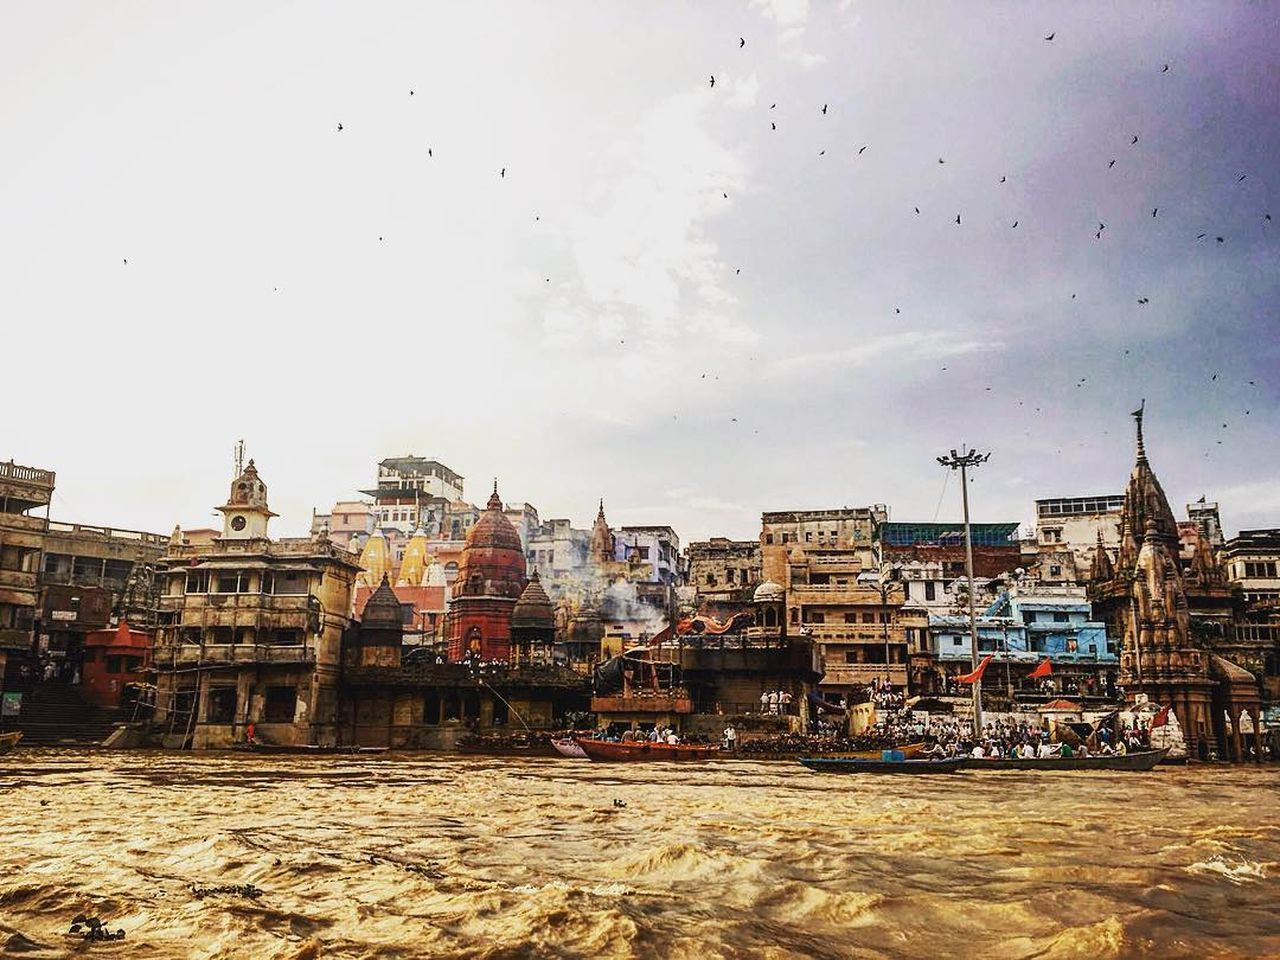 City Sky No People Outdoors Day Cityscape Architecture Varanasi, India Ganges, Indian Lifestyle And Culture, Bathing In The Ganges, Varanasi Varanasi India India Indian Culture  Indian Ganges River Ganges Gange River Riverside Riverside Photography Miles Away